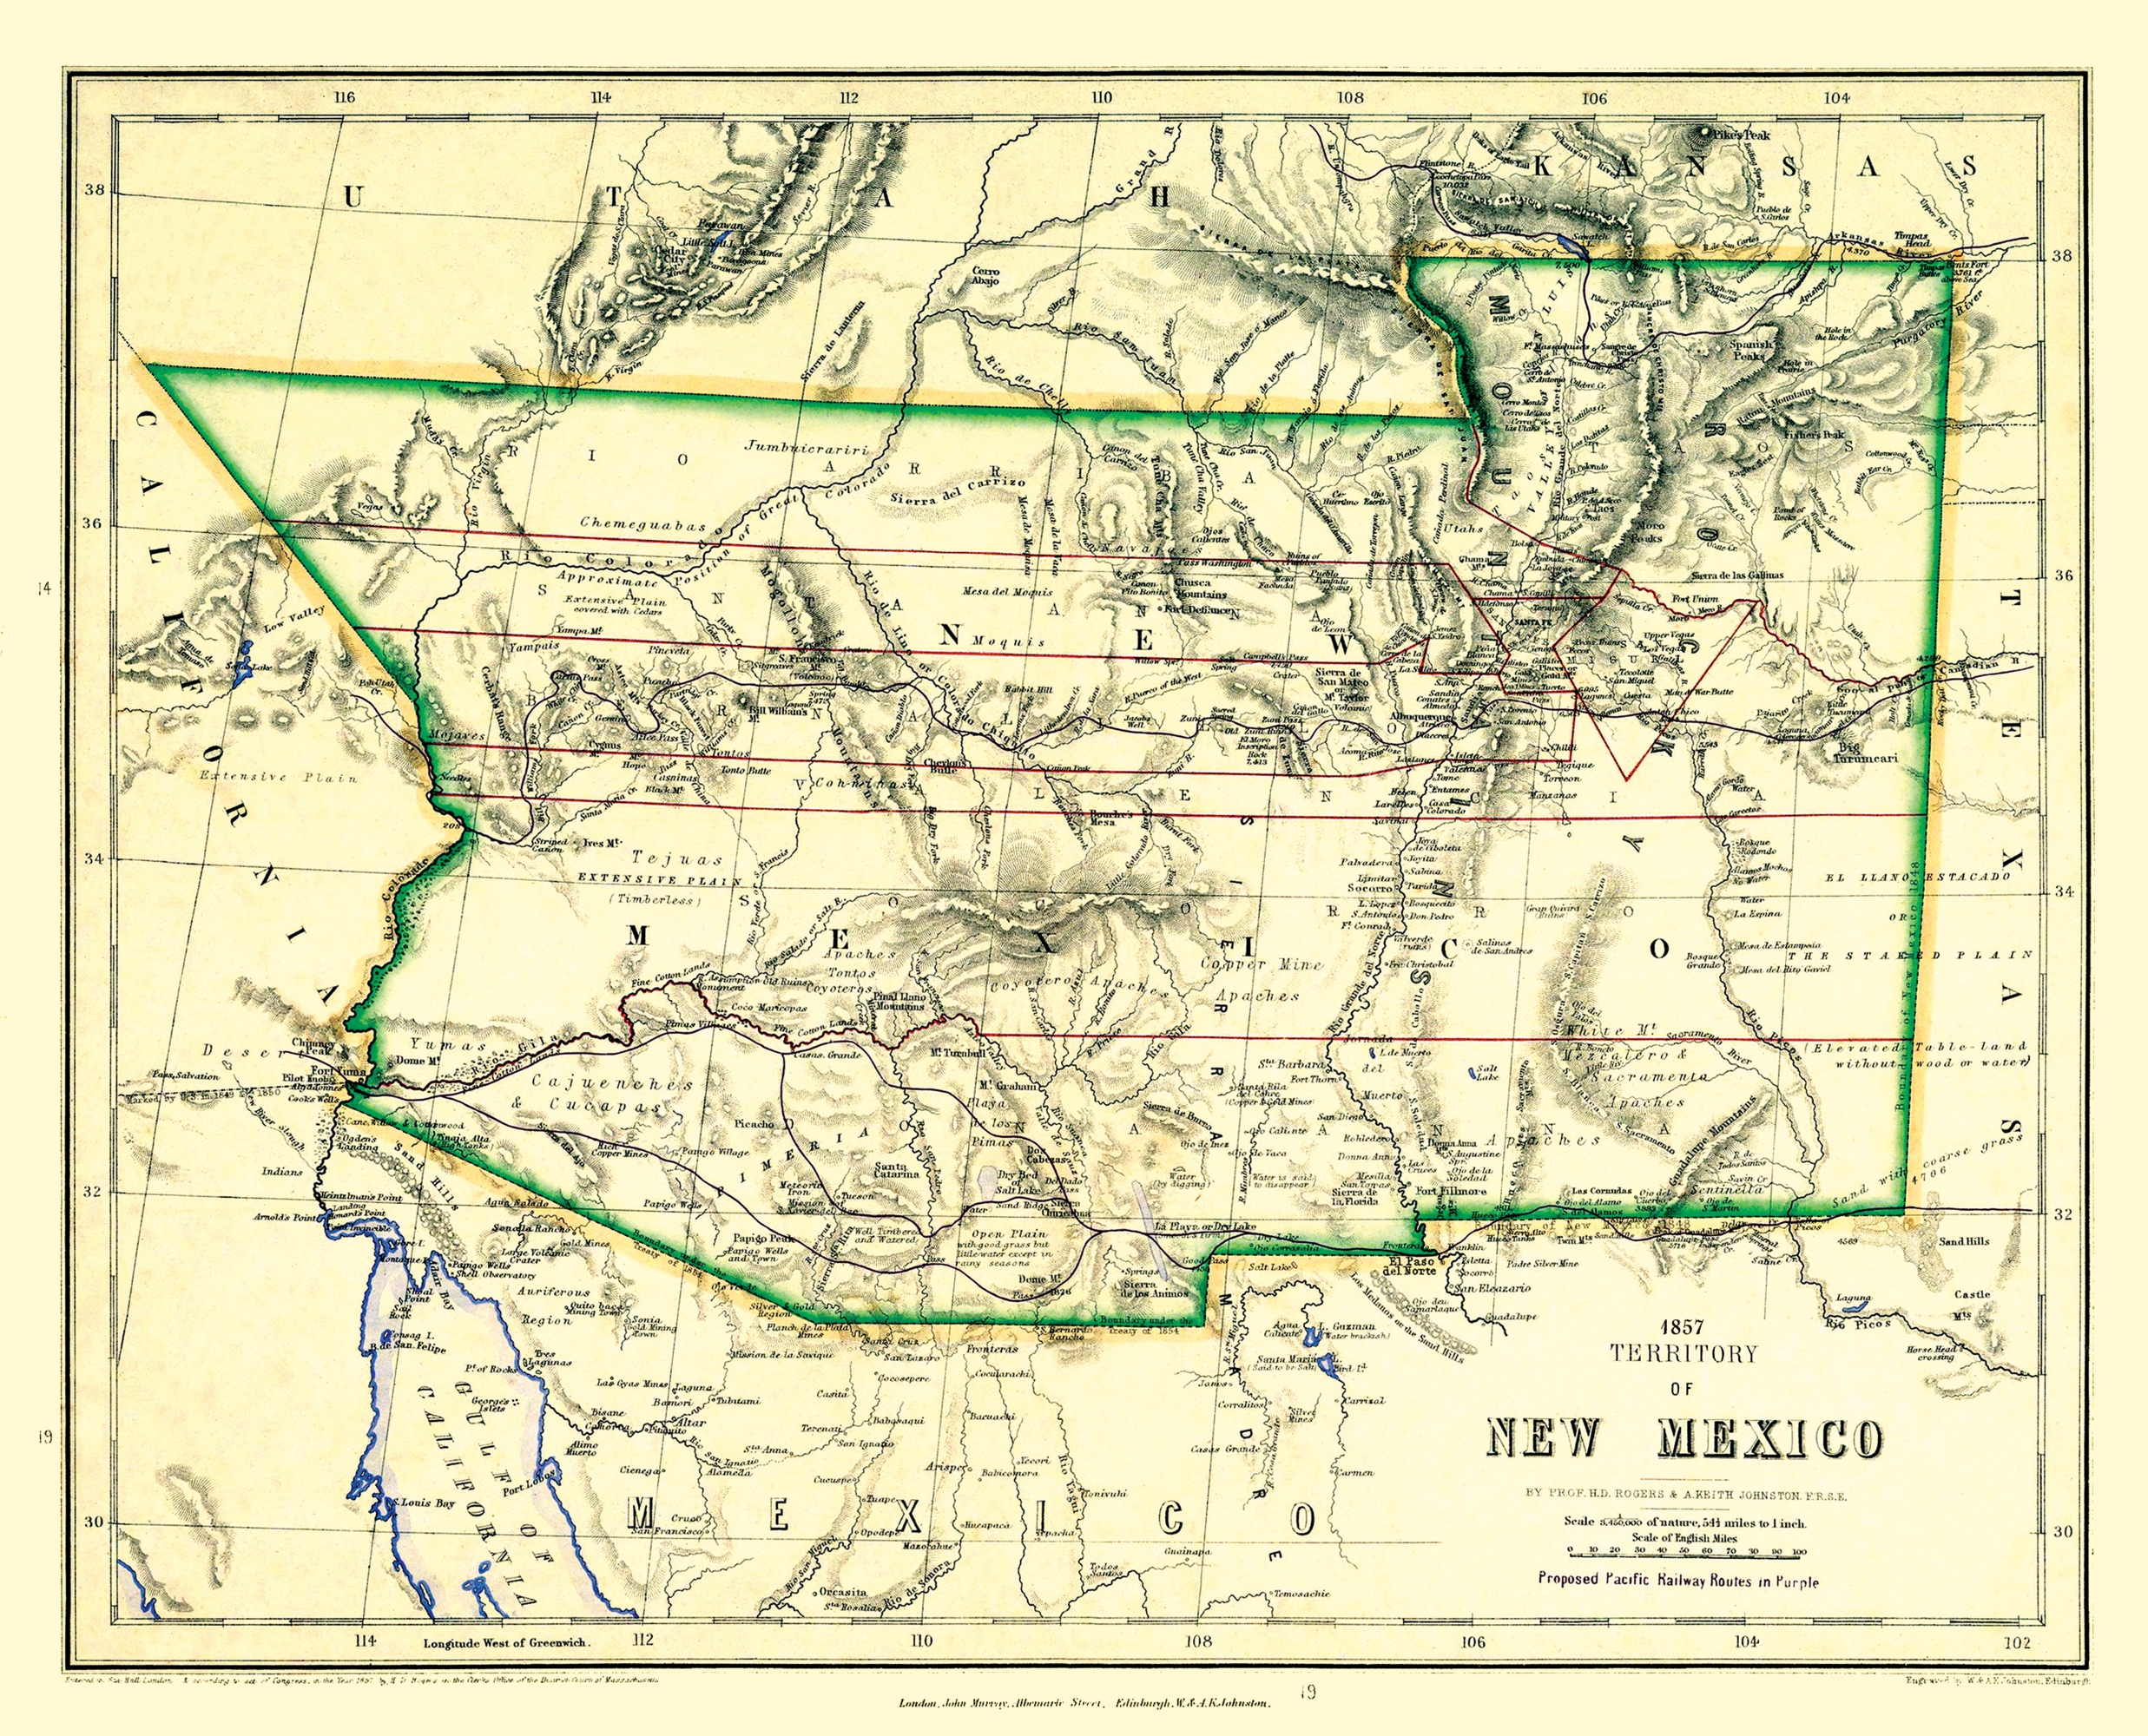 Old State Map - New Mexico Territory - Johnston 1857